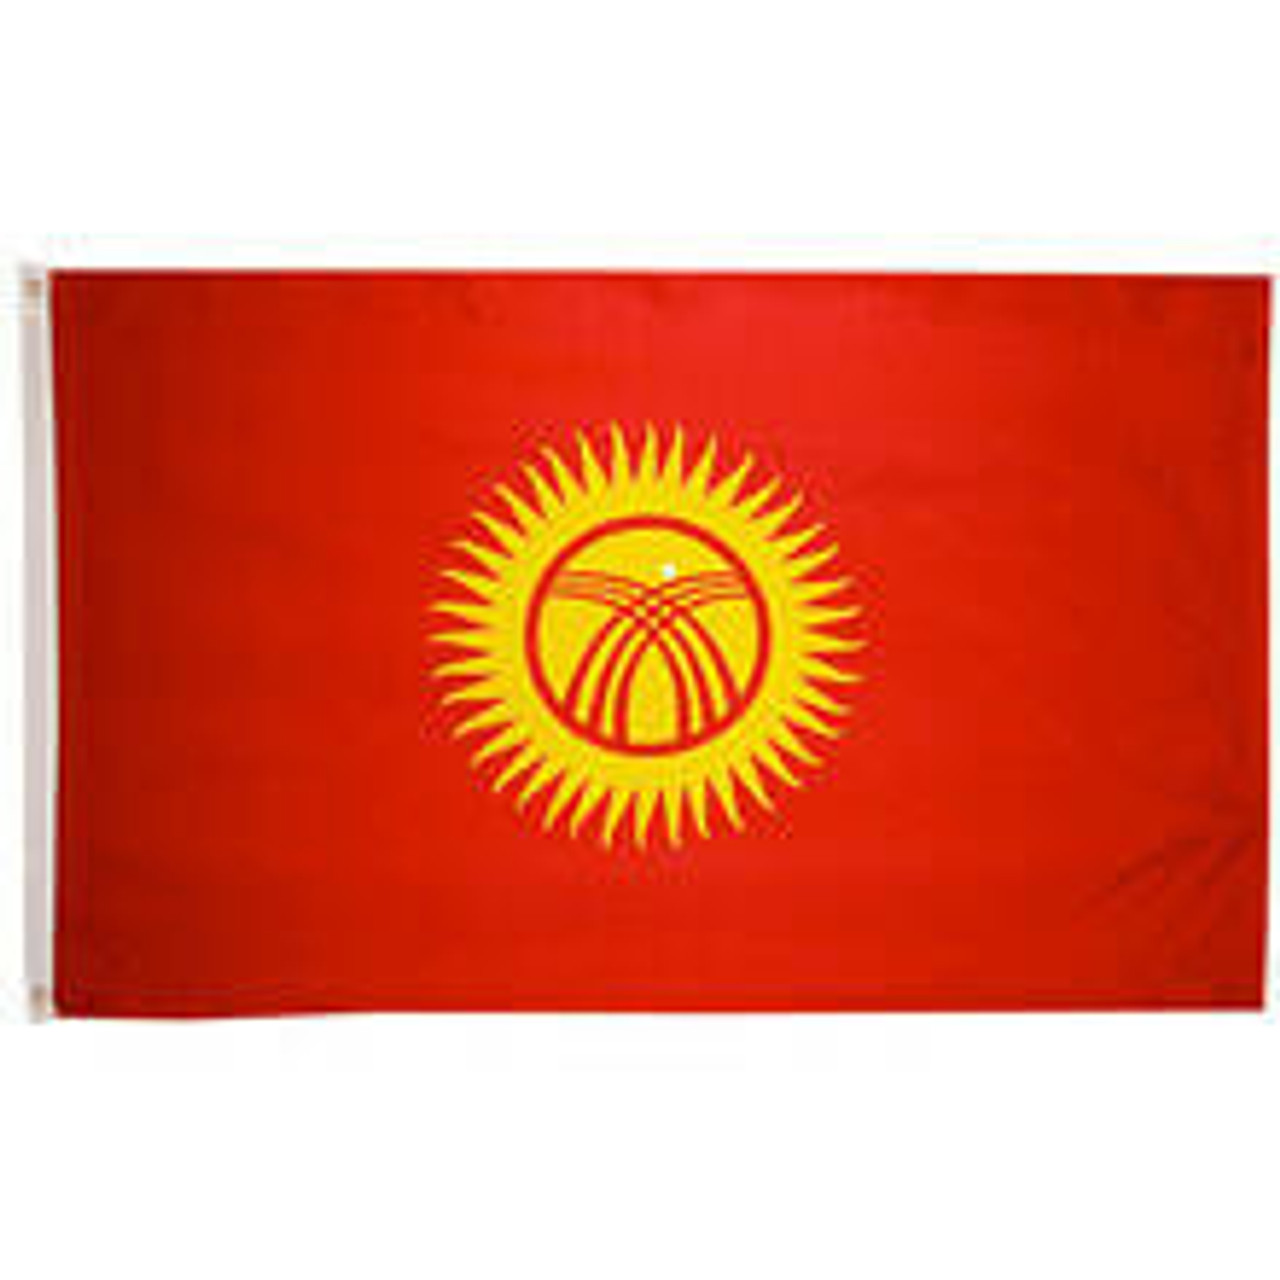 A Kyrgyzstan Flag made of nylon with lock stitching, polyester canvas heading, and brass grommets. Design is a red field charged with a yellow sun with rays. the sun is crossed by two sets of three curved lines.